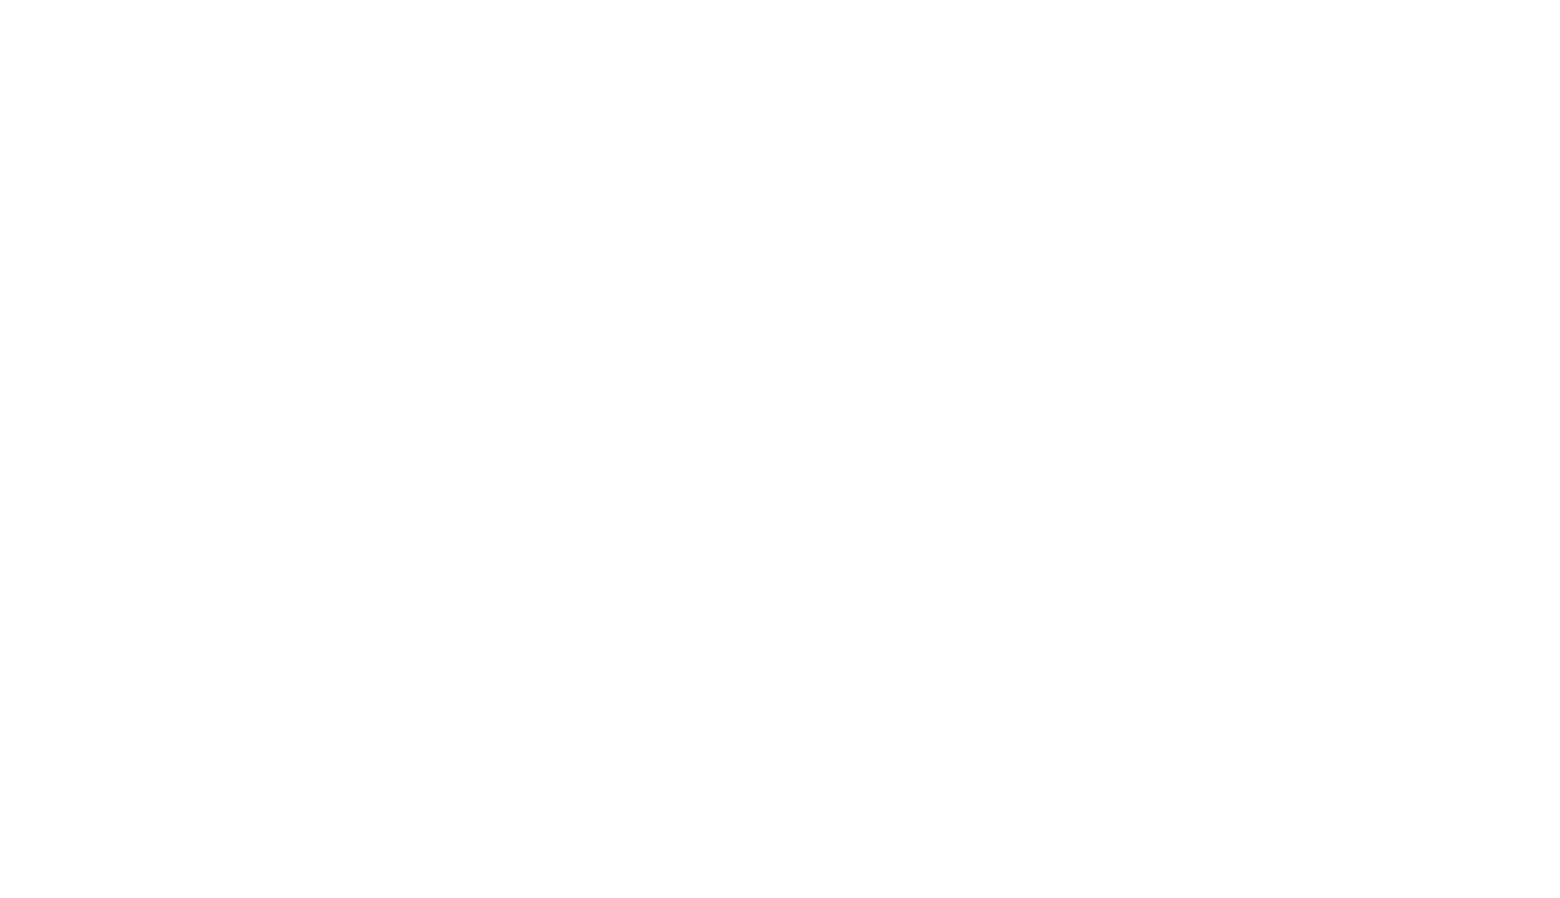 Whitehouse Floors